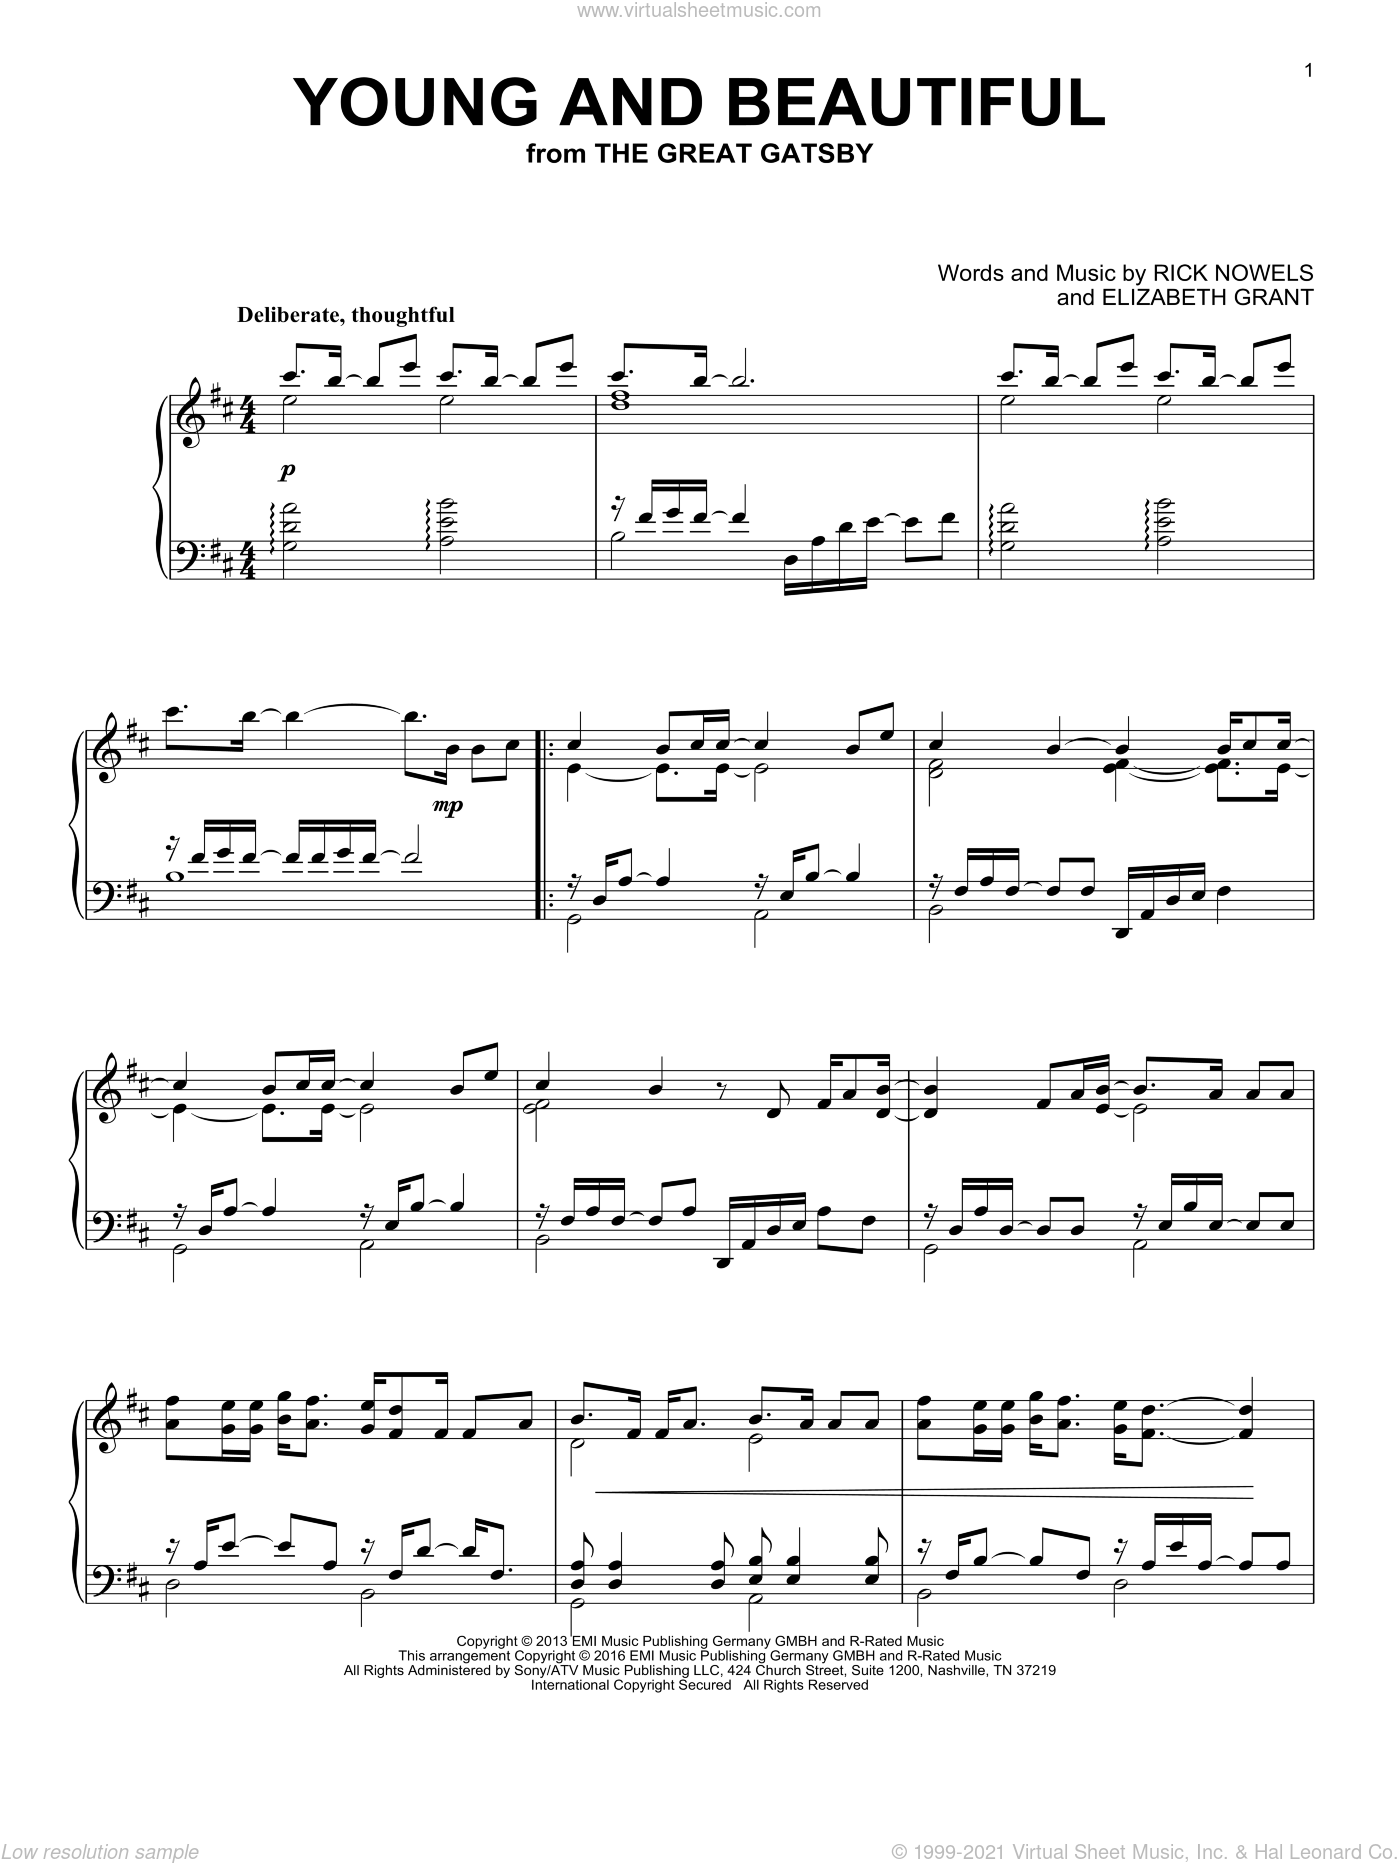 Young And Beautiful sheet music for piano solo by Rick Nowels, Lana Del Ray, Lana Del Rey and Elizabeth Grant. Score Image Preview.